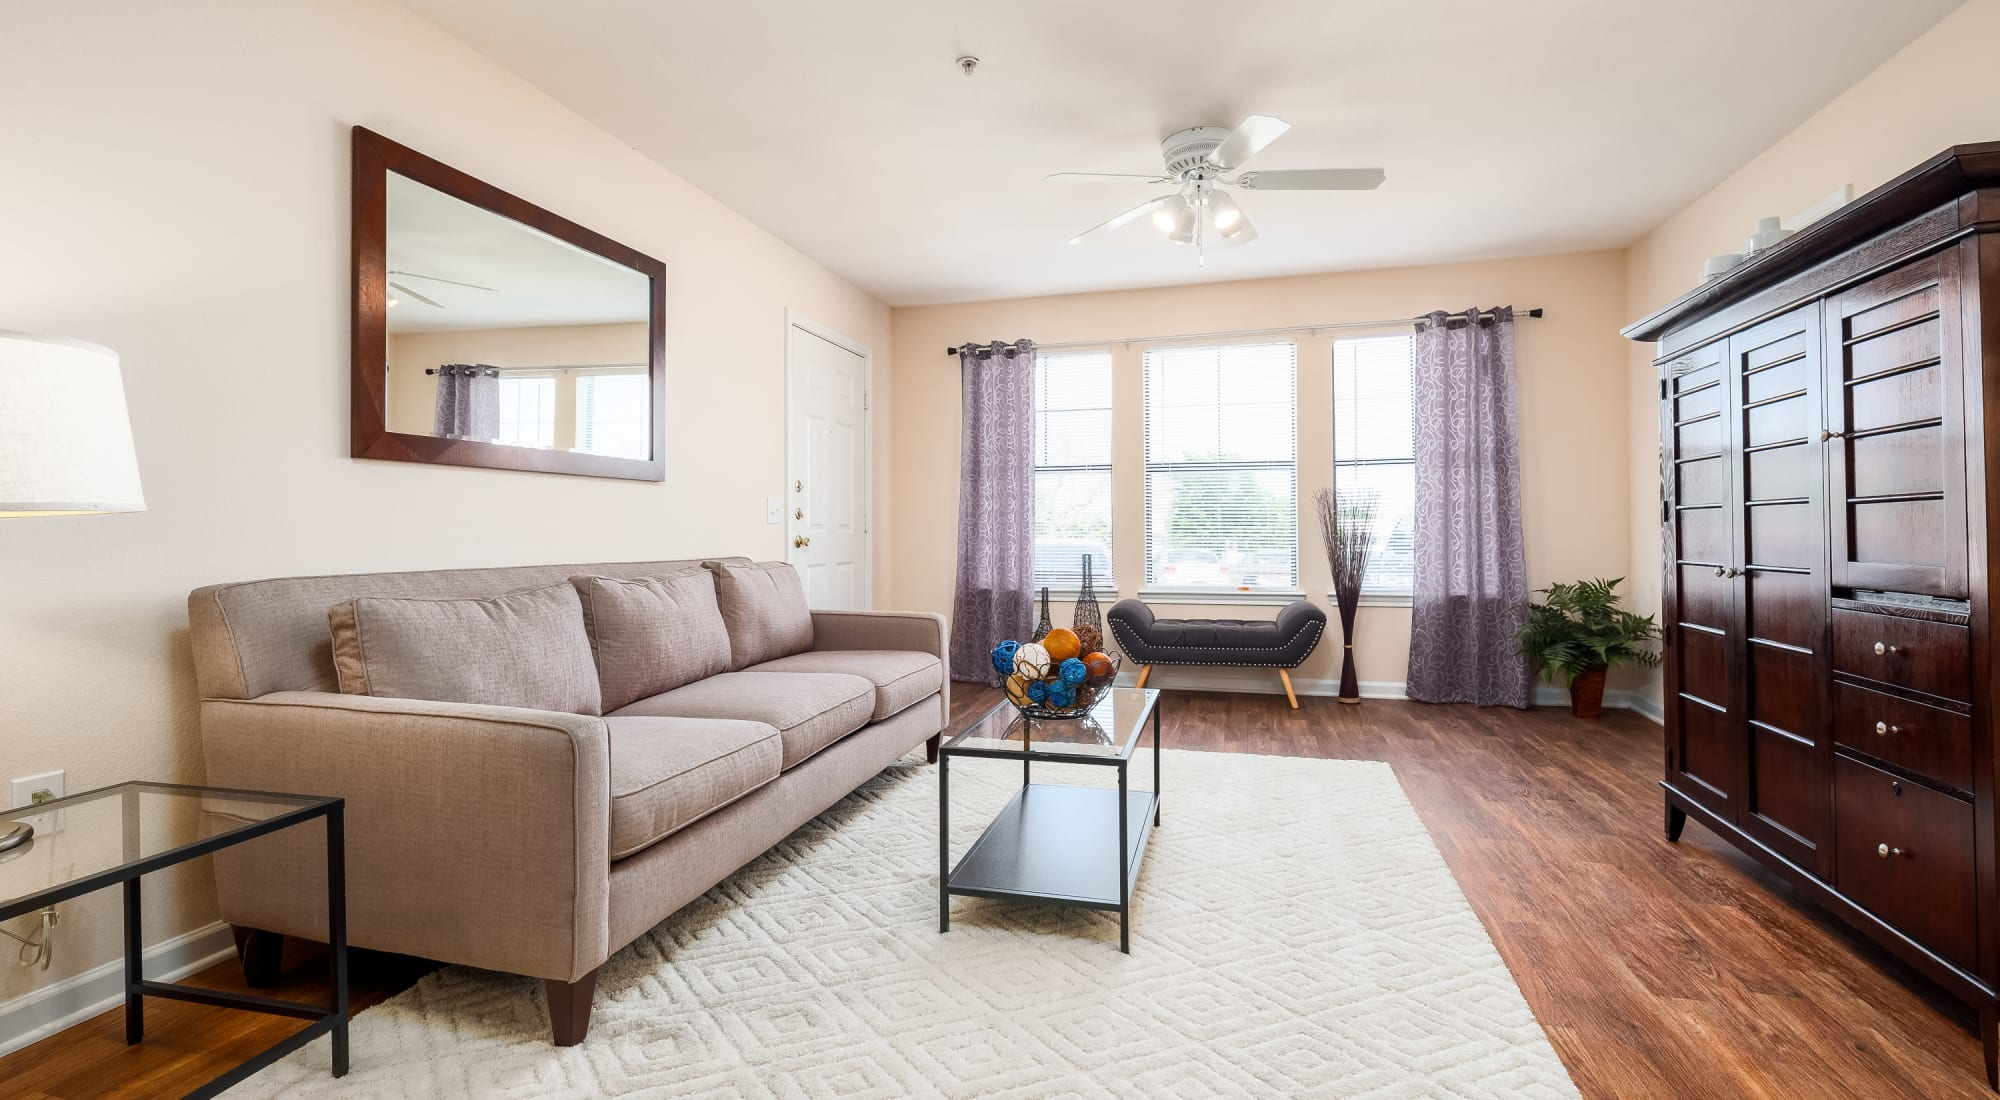 Apply to live at Arbrook Park Apartment Homes in Arlington, Texas